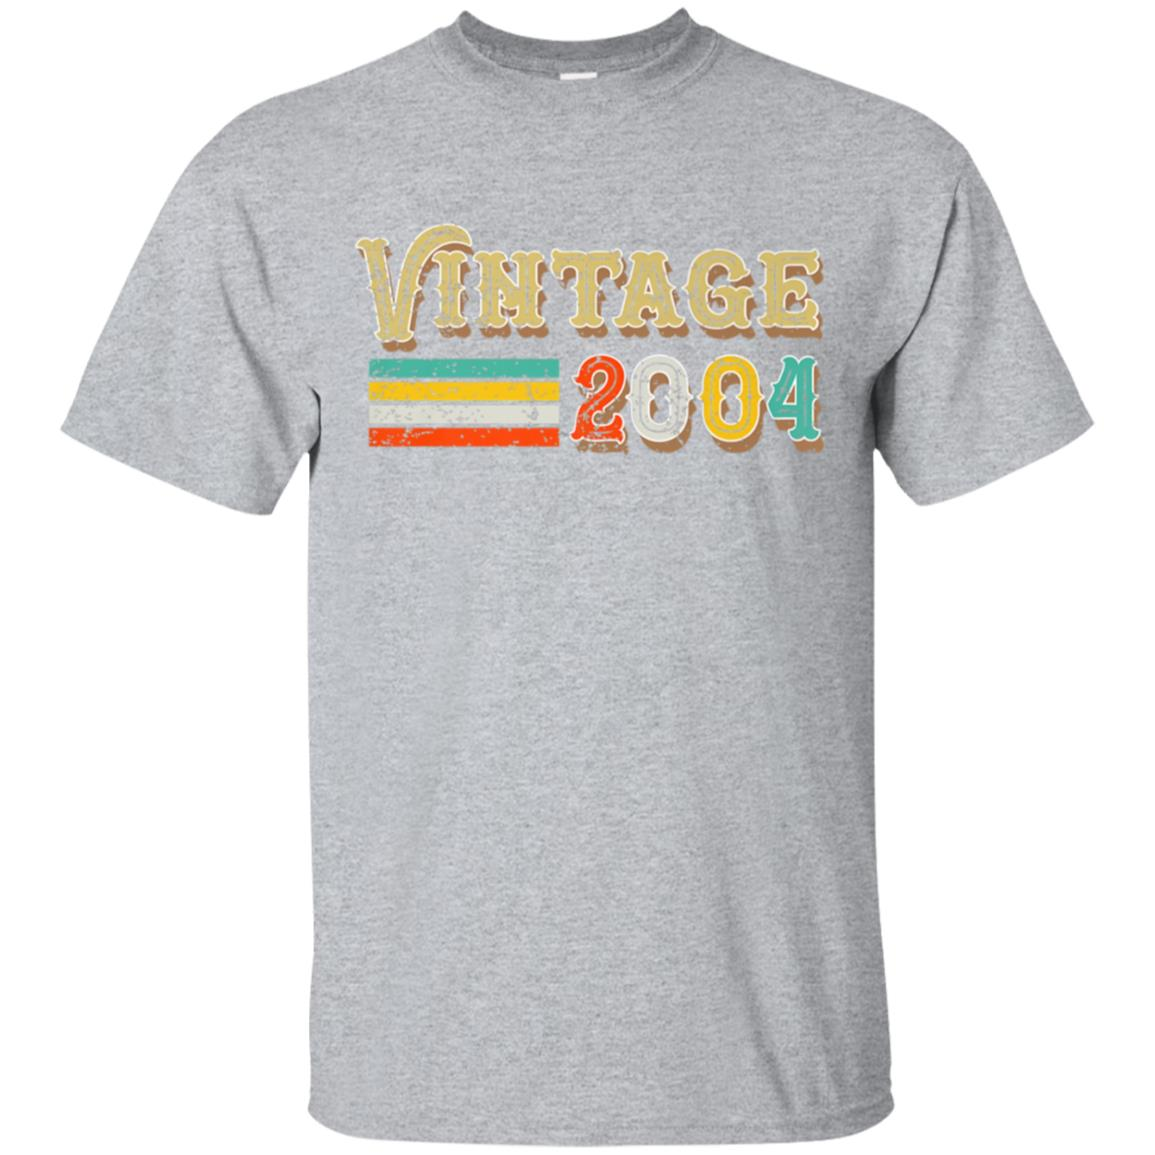 14th Birthday Gifts Vintage 2004 T-Shirt 14 Year Old Outfit 99promocode